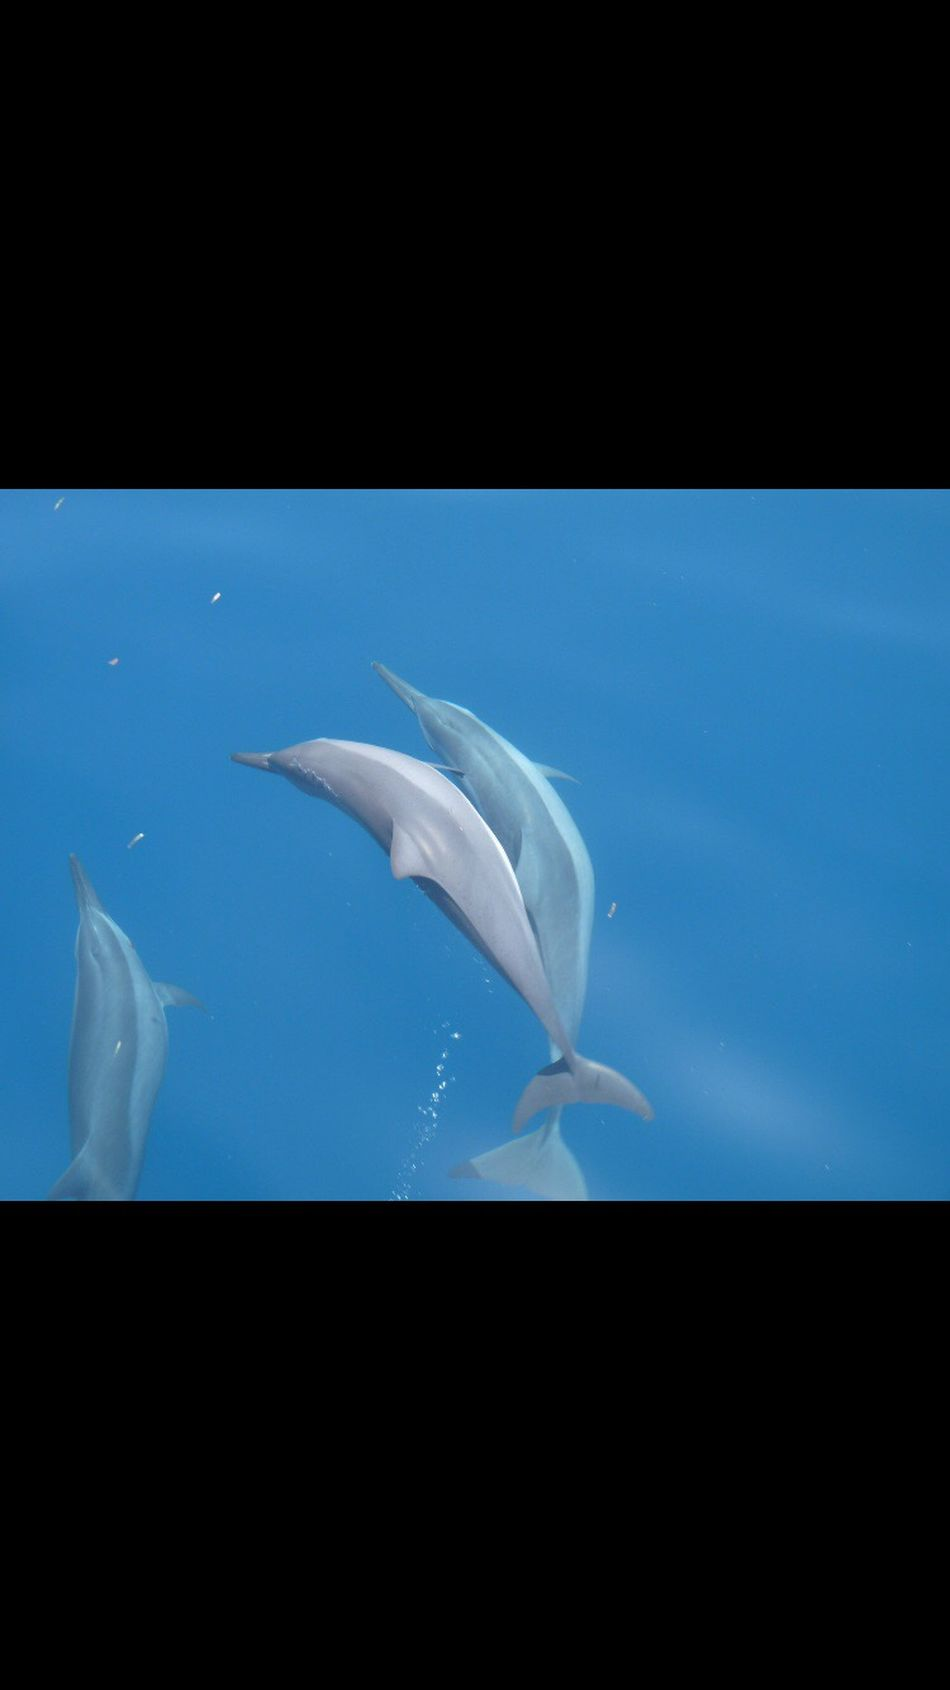 Animal Themes Swimming Dolphins Dolphin Safari In Nature